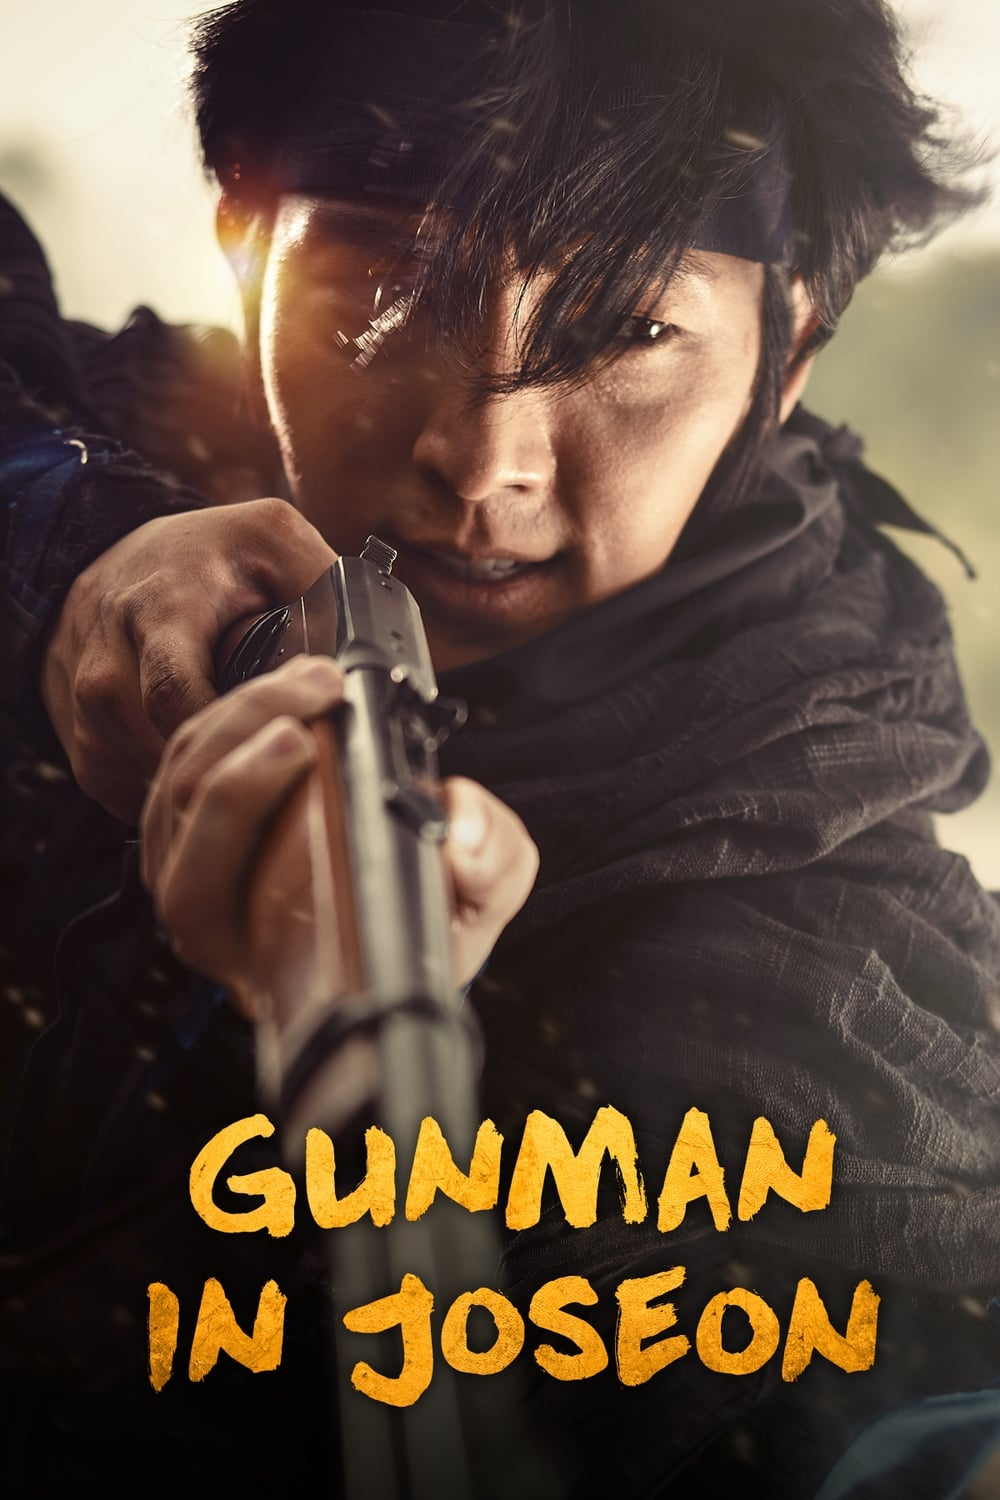 The Joseon Gunman Poster